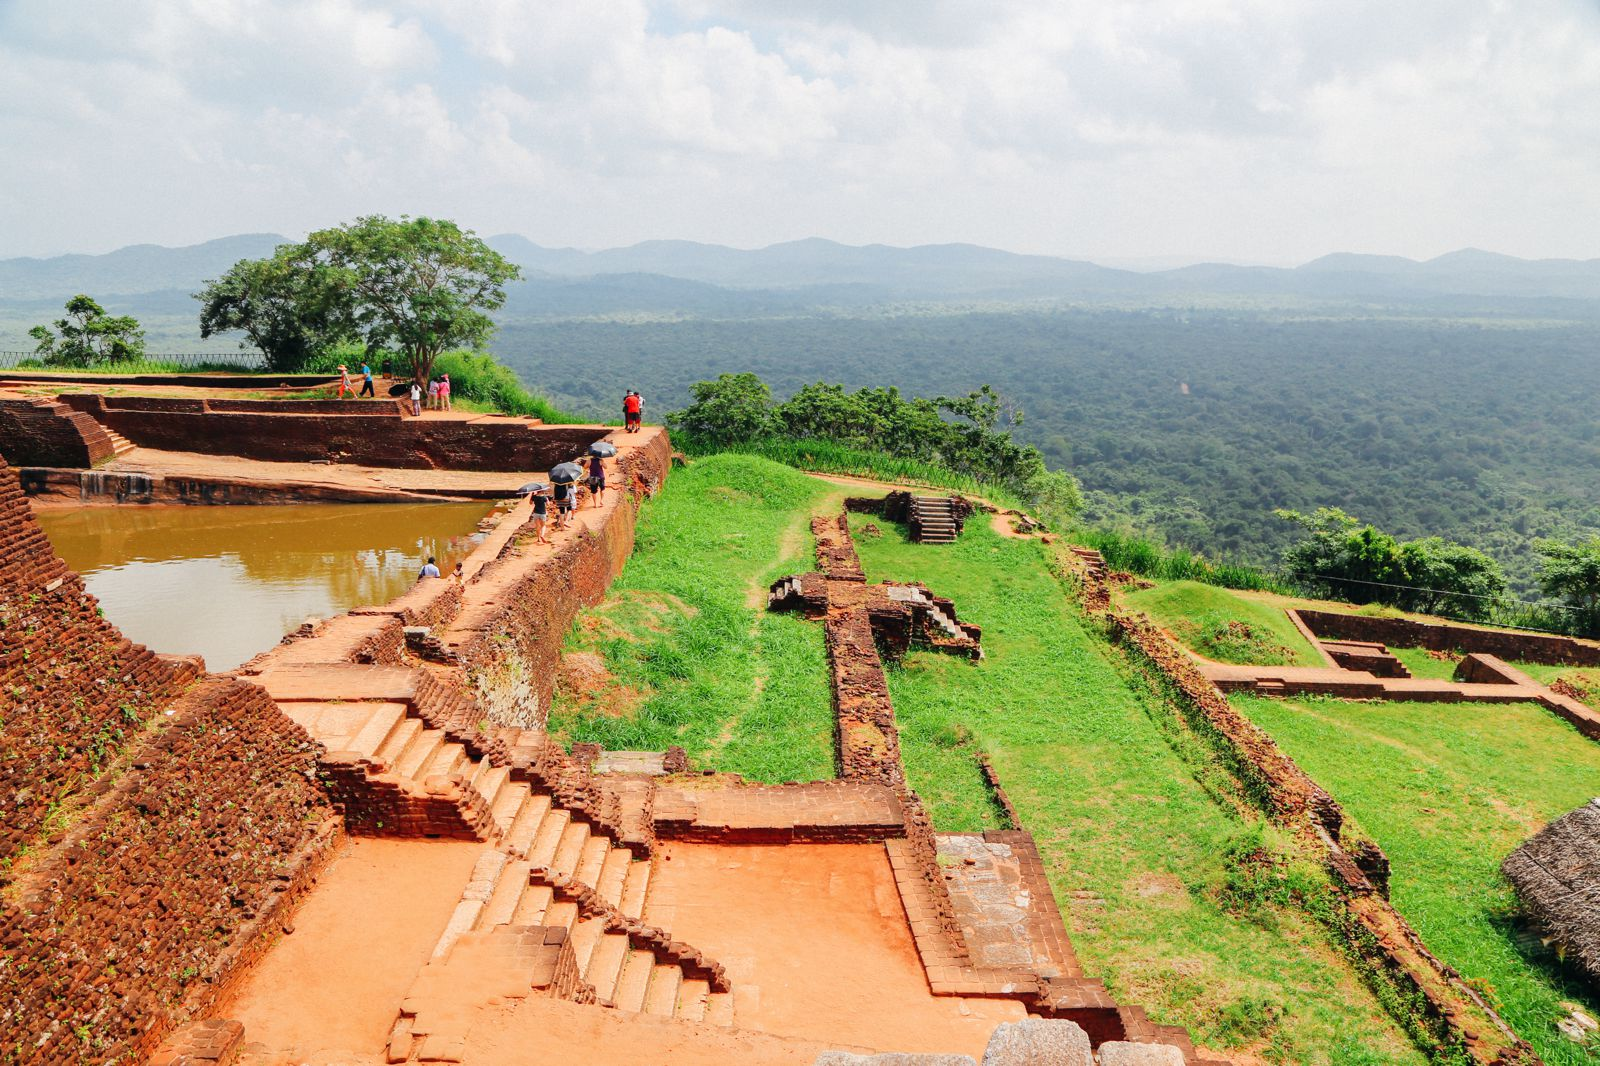 The Complete Guide To Climbing Sri Lanka's UNESCO World Heritage Site Of Sigiriya - Lion Rock (46)